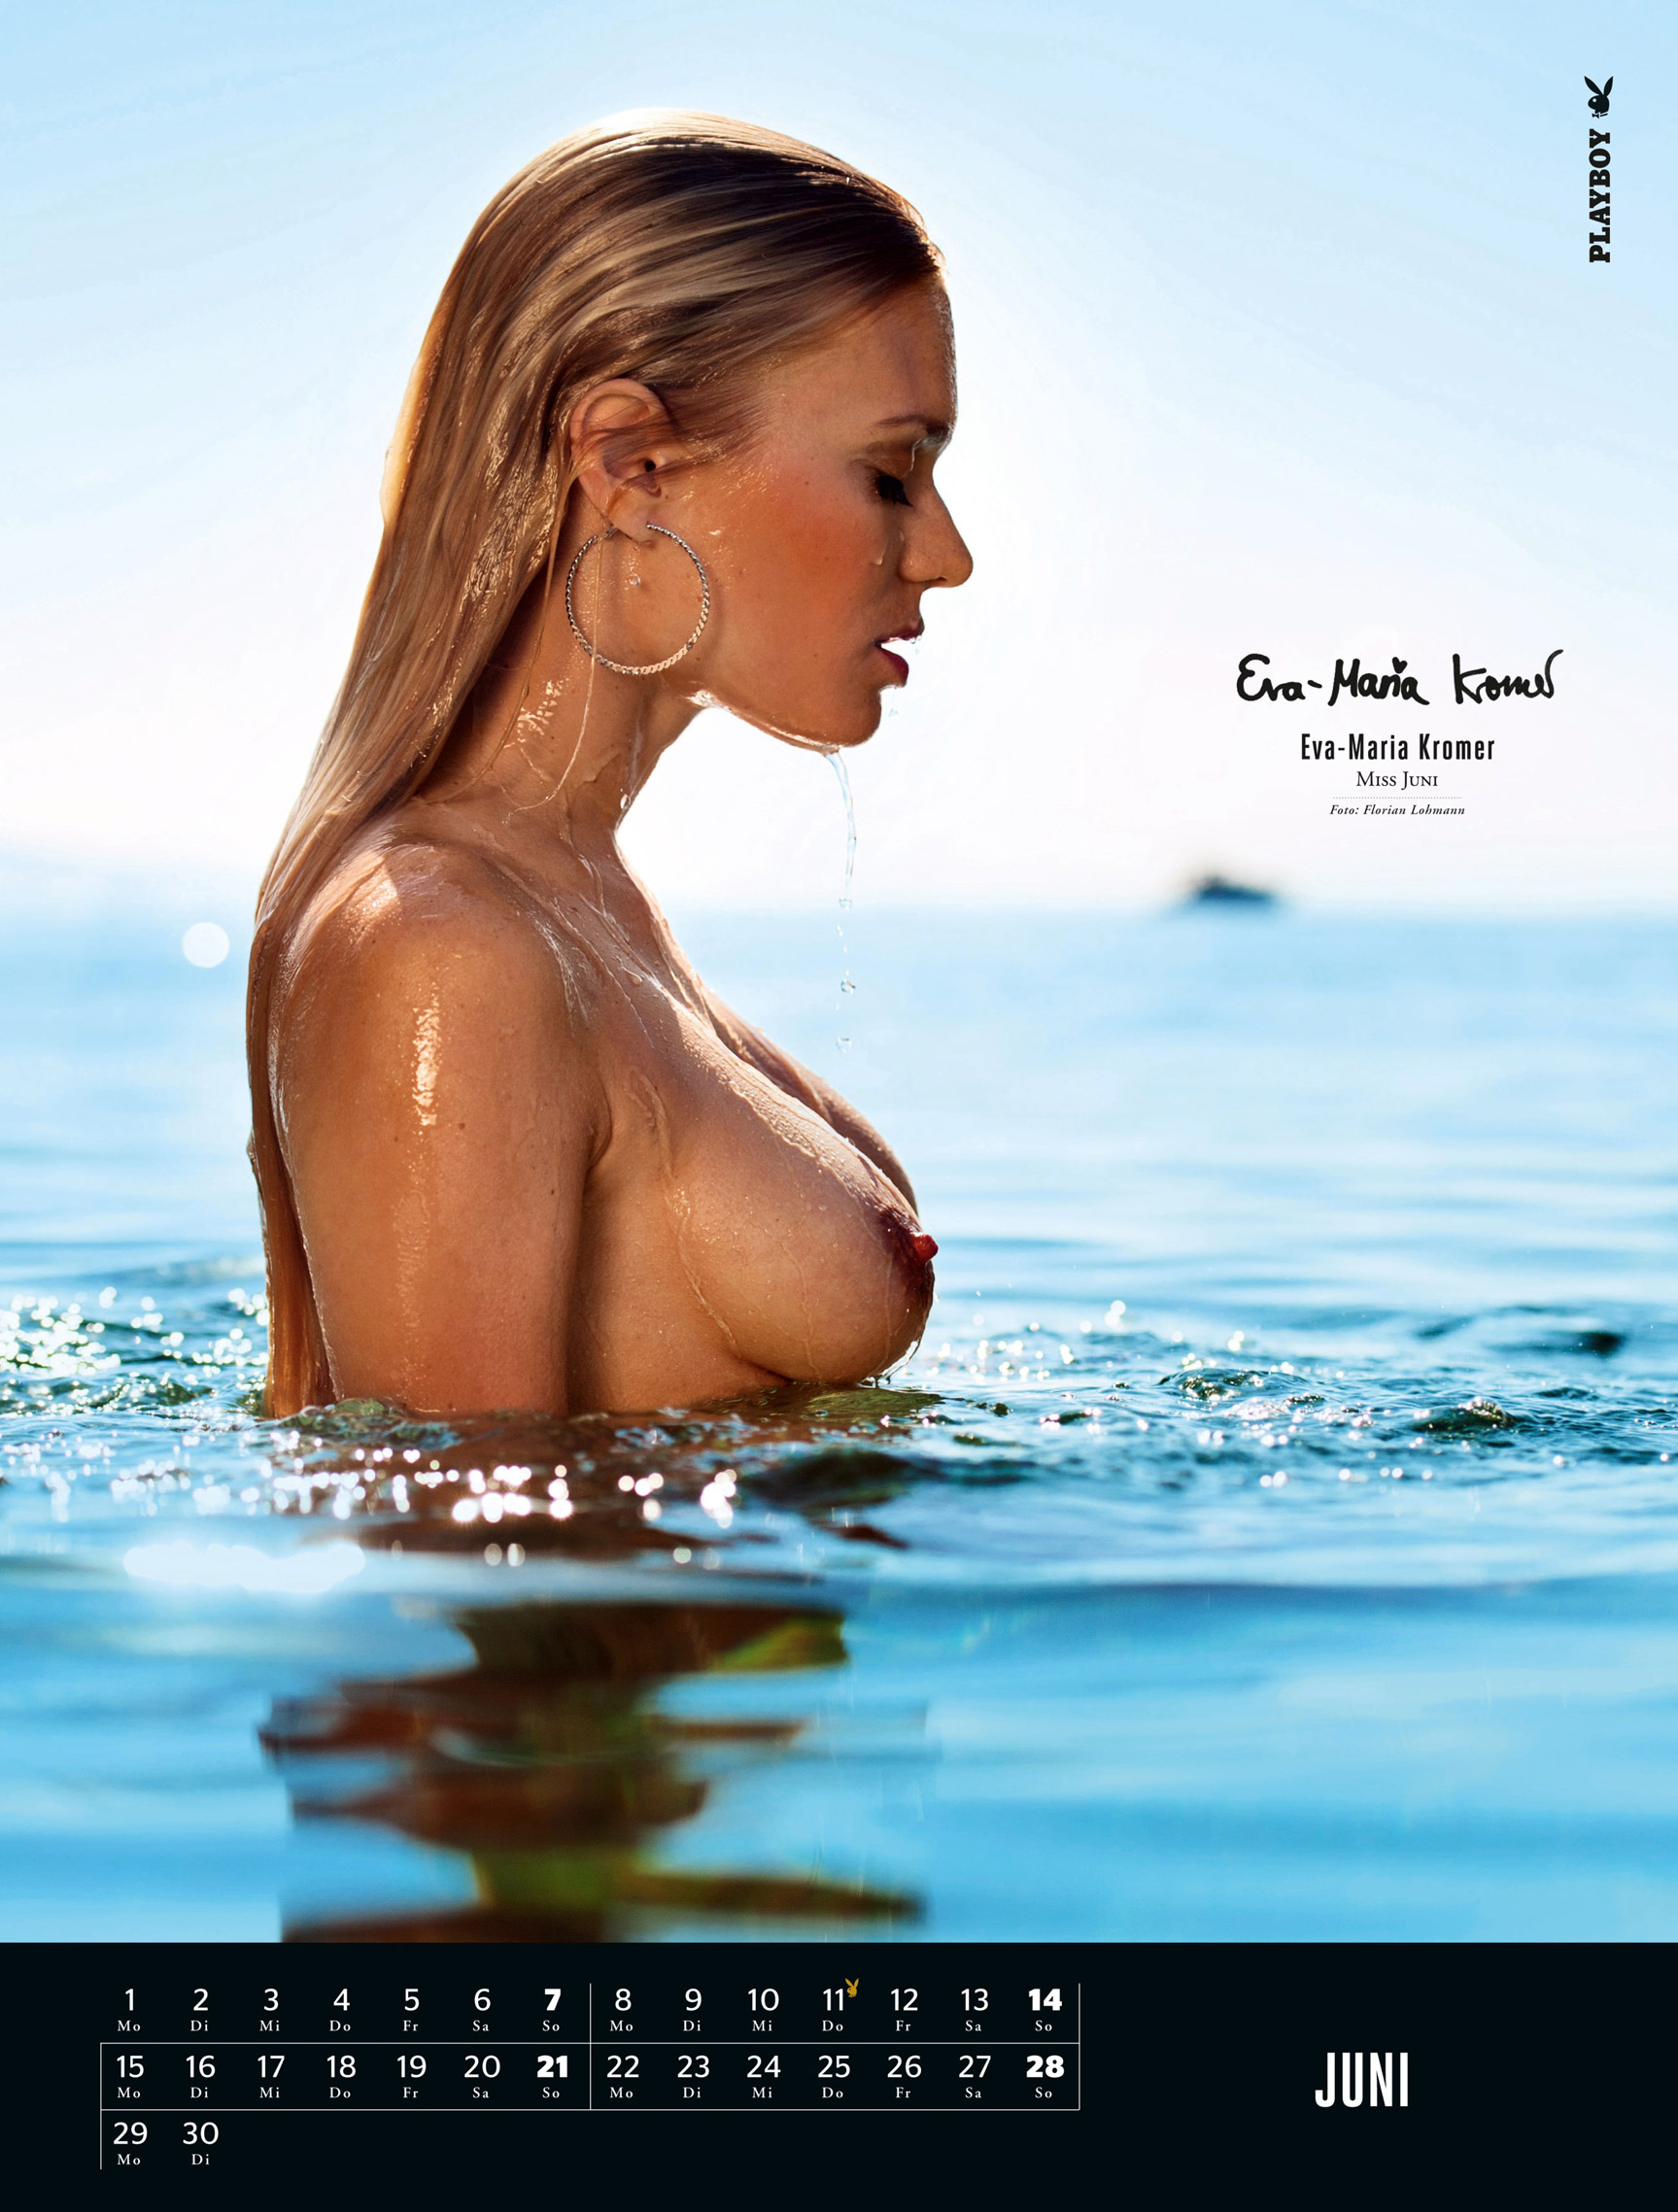 ����������� ��������� Playboy Germany Playmate Calendar 2015 - Miss June 2014 Eva-Maria Kromer